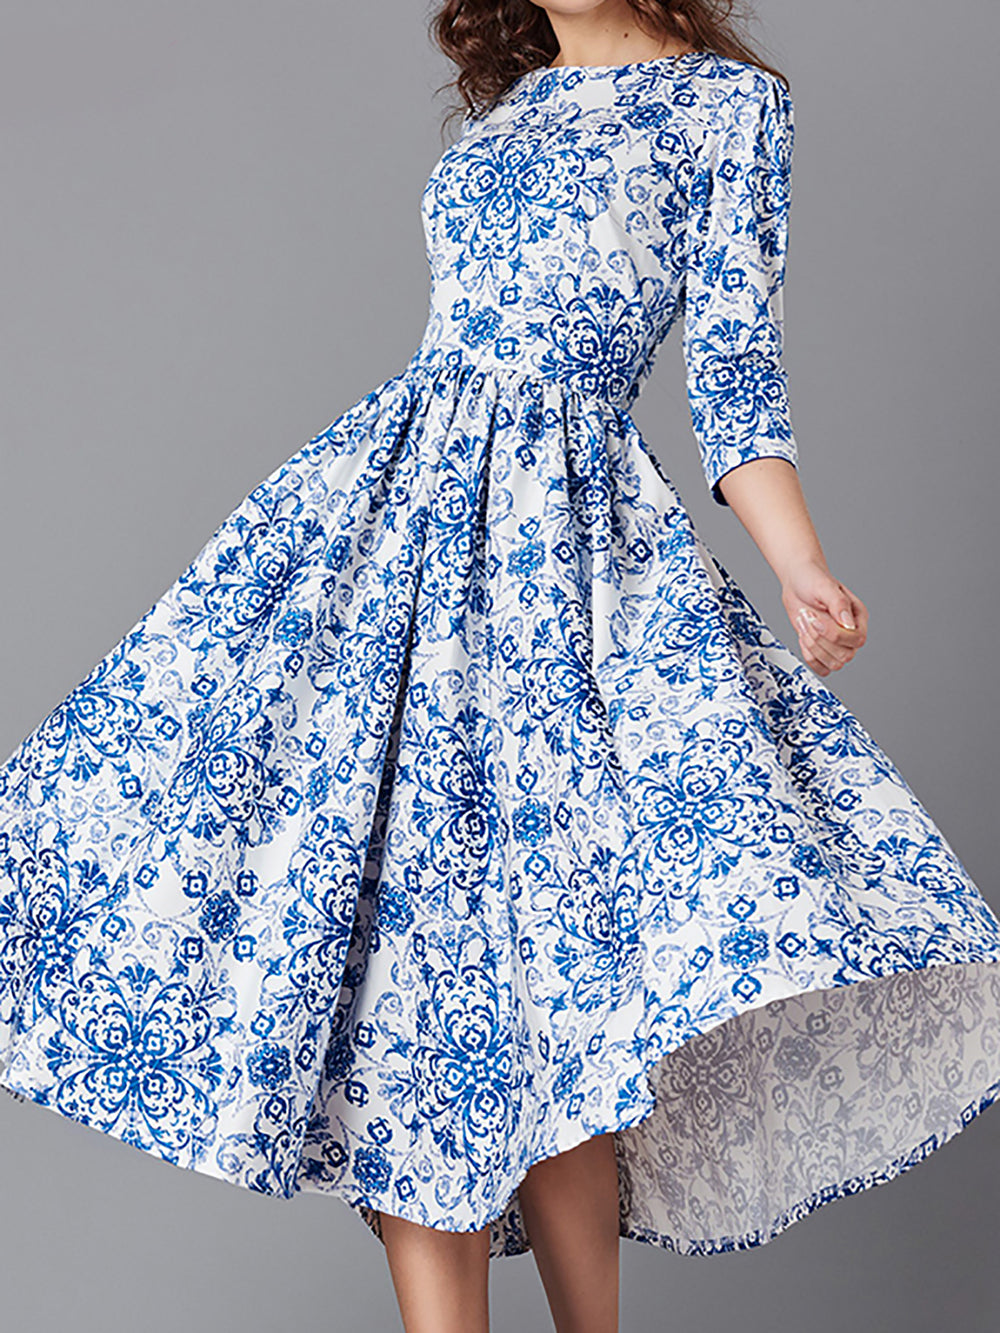 High-Rise Swing Daily Printed Floral Midi Dress